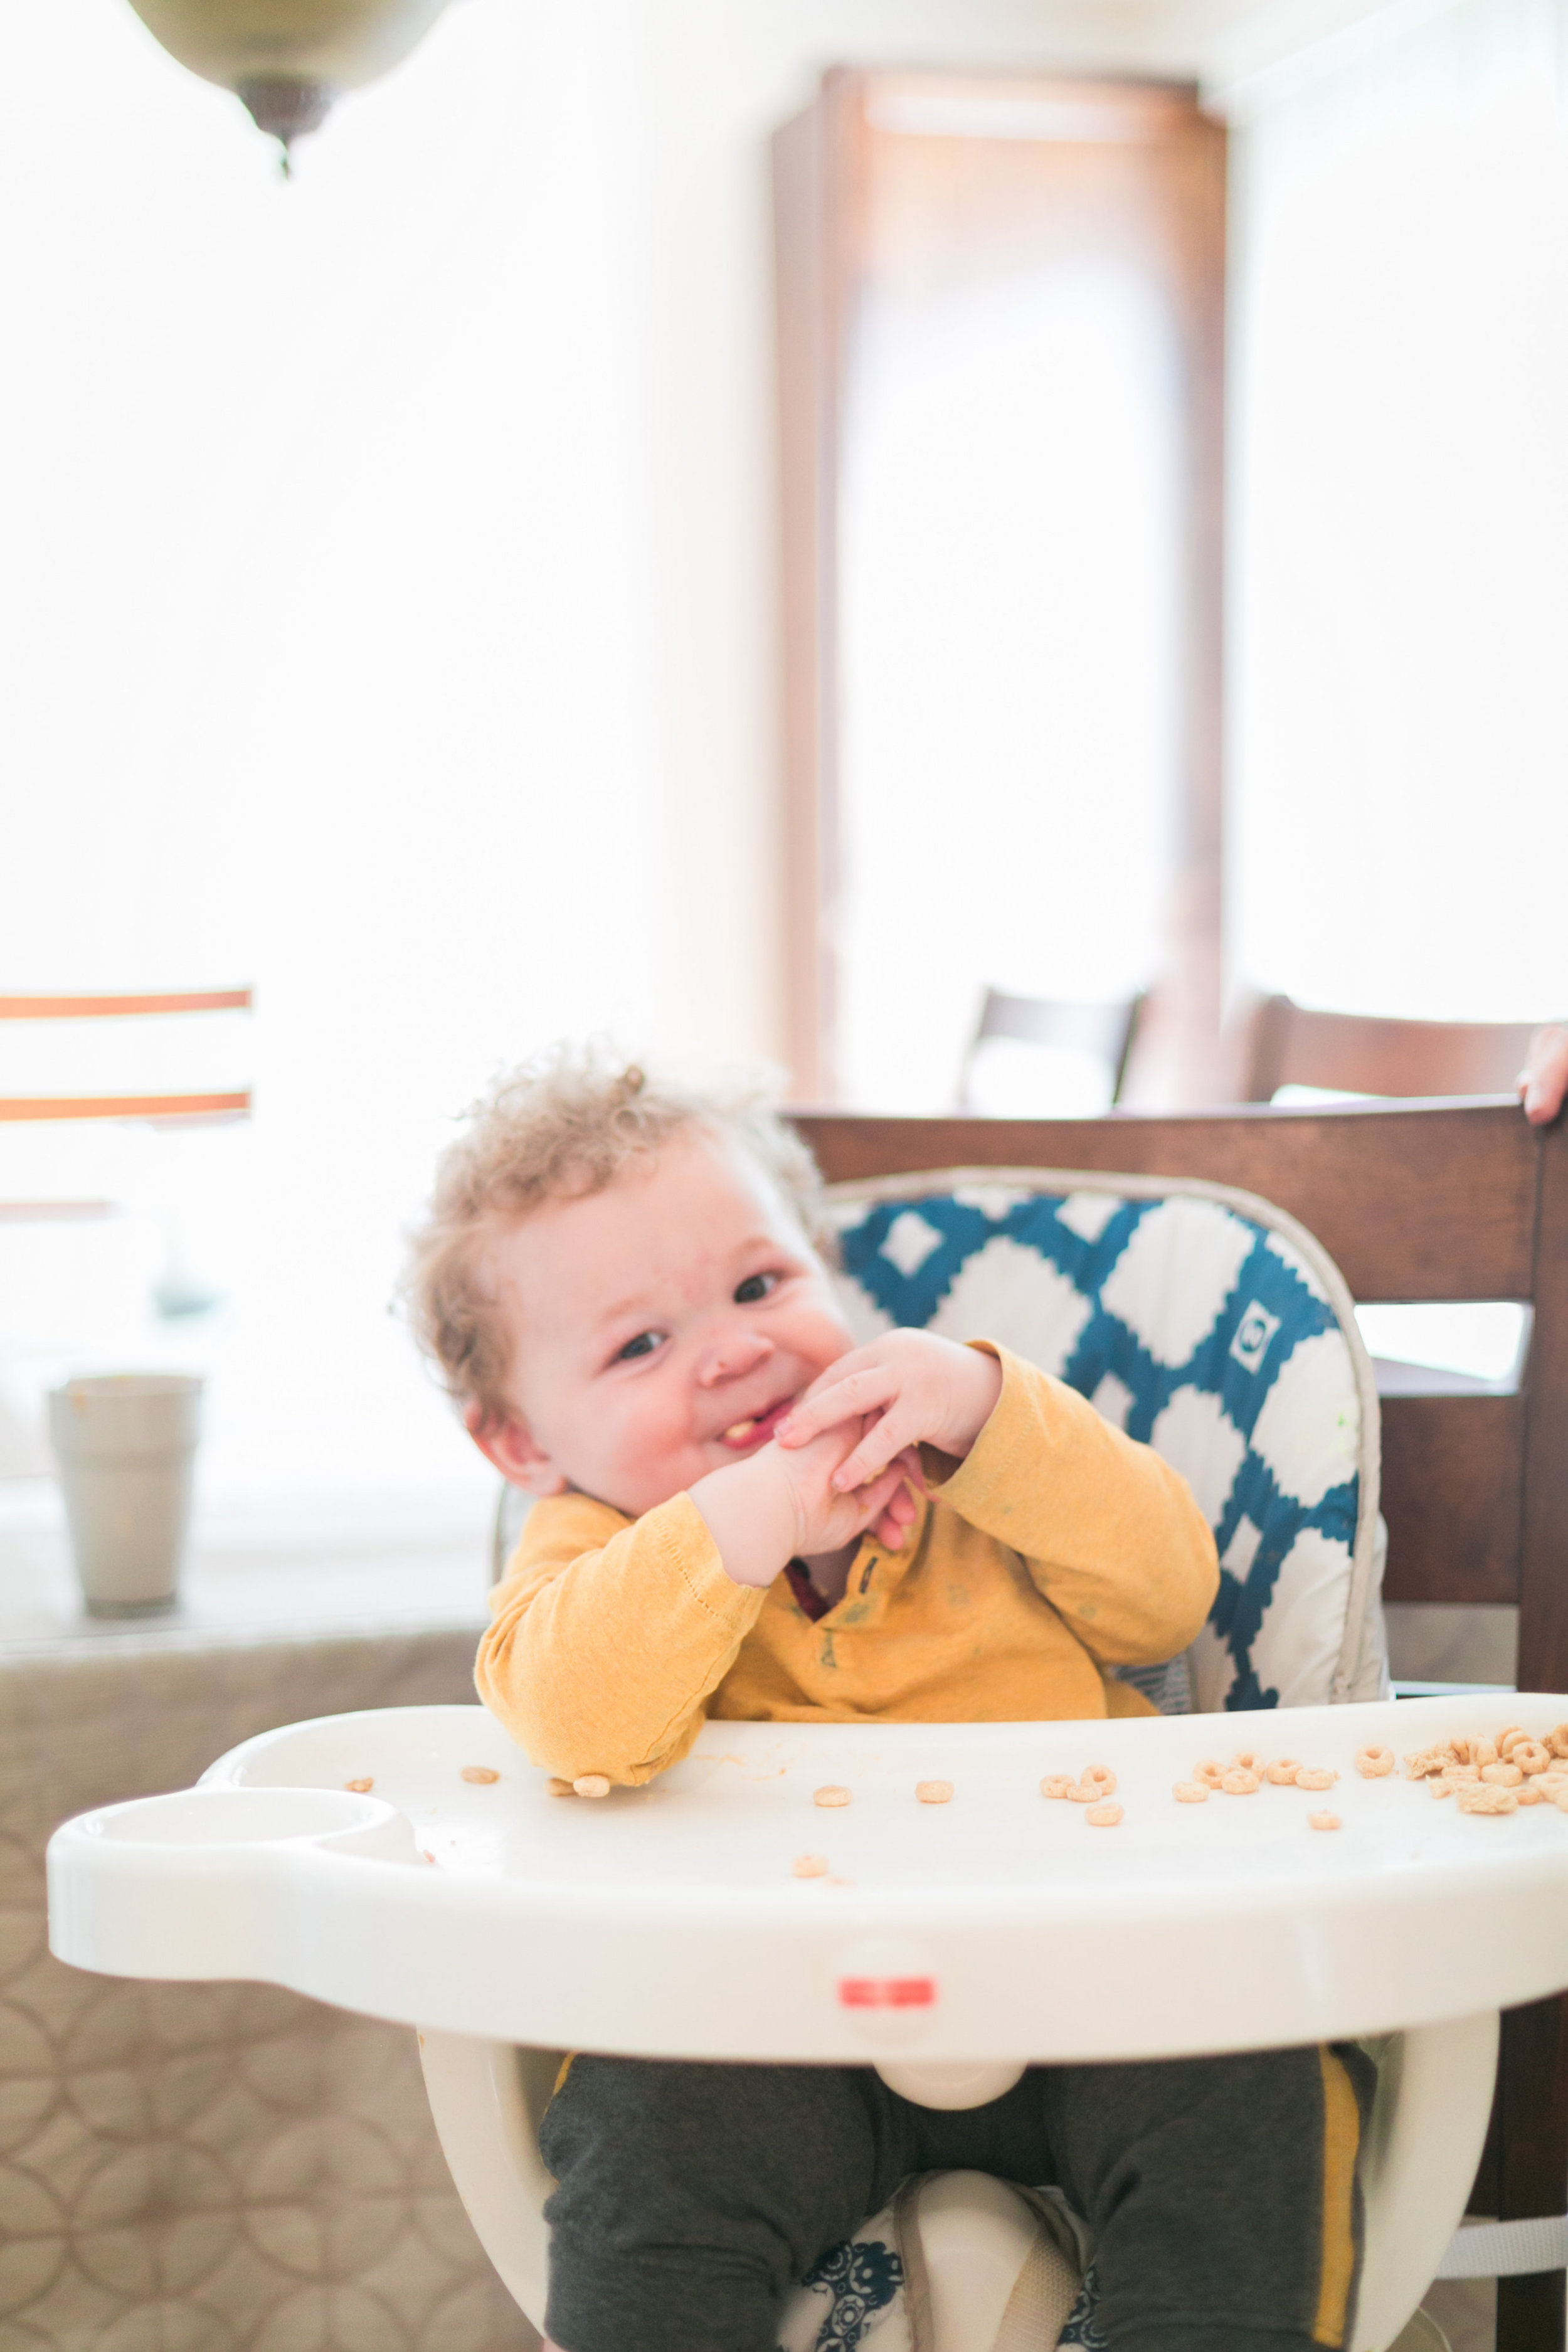 Is your Little One Ready for Solids?